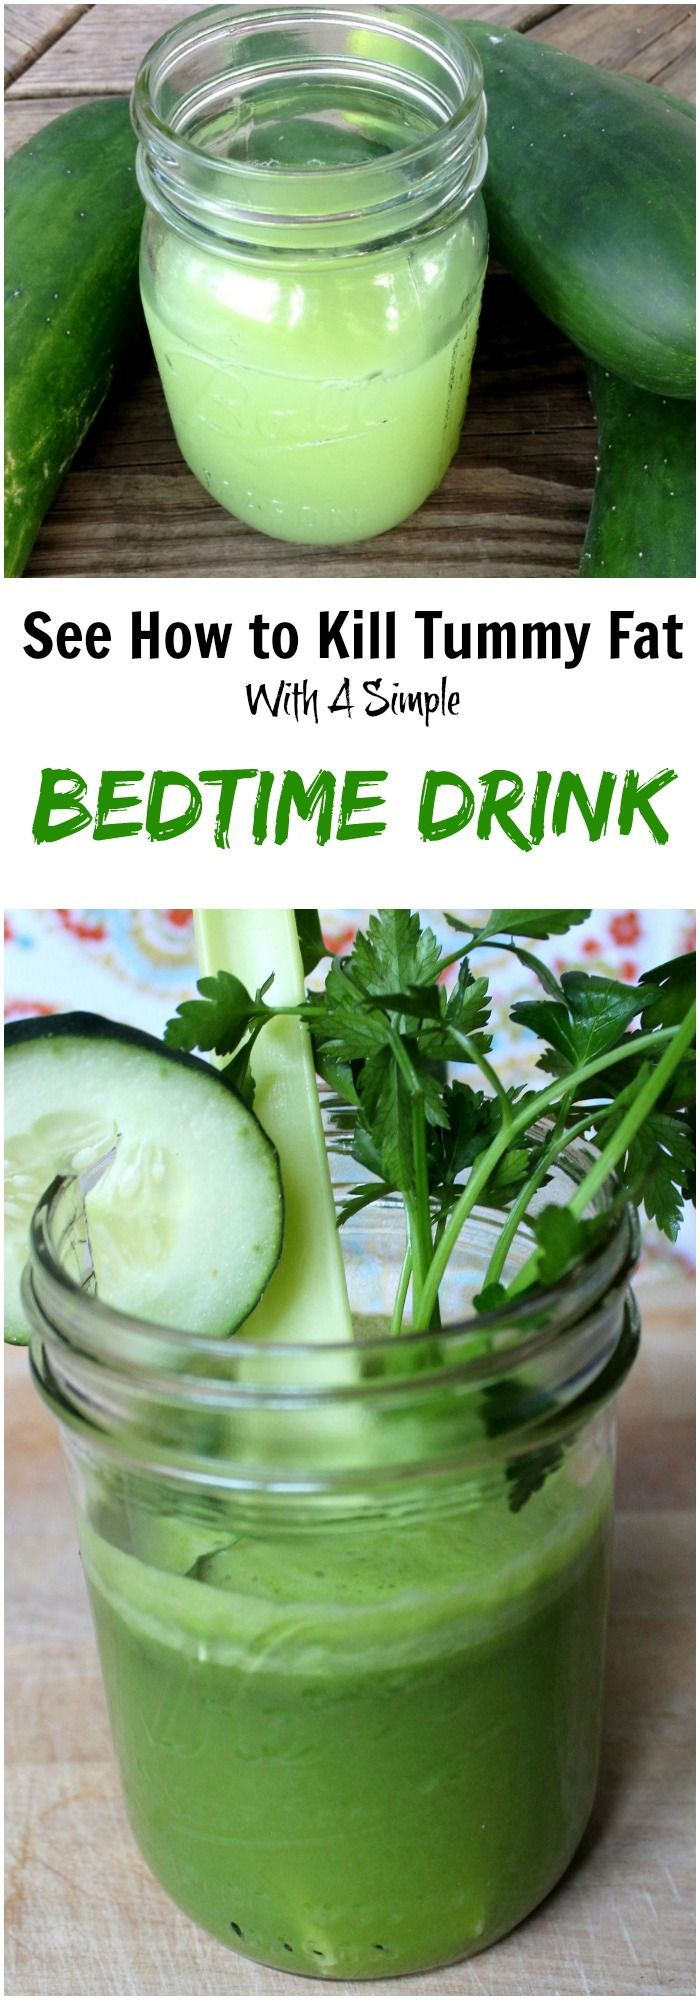 See How to Kill Tummy Fat With A Simple Bedtime Drink #healthy #drink #weightloss #diet bedtime #flatbelly